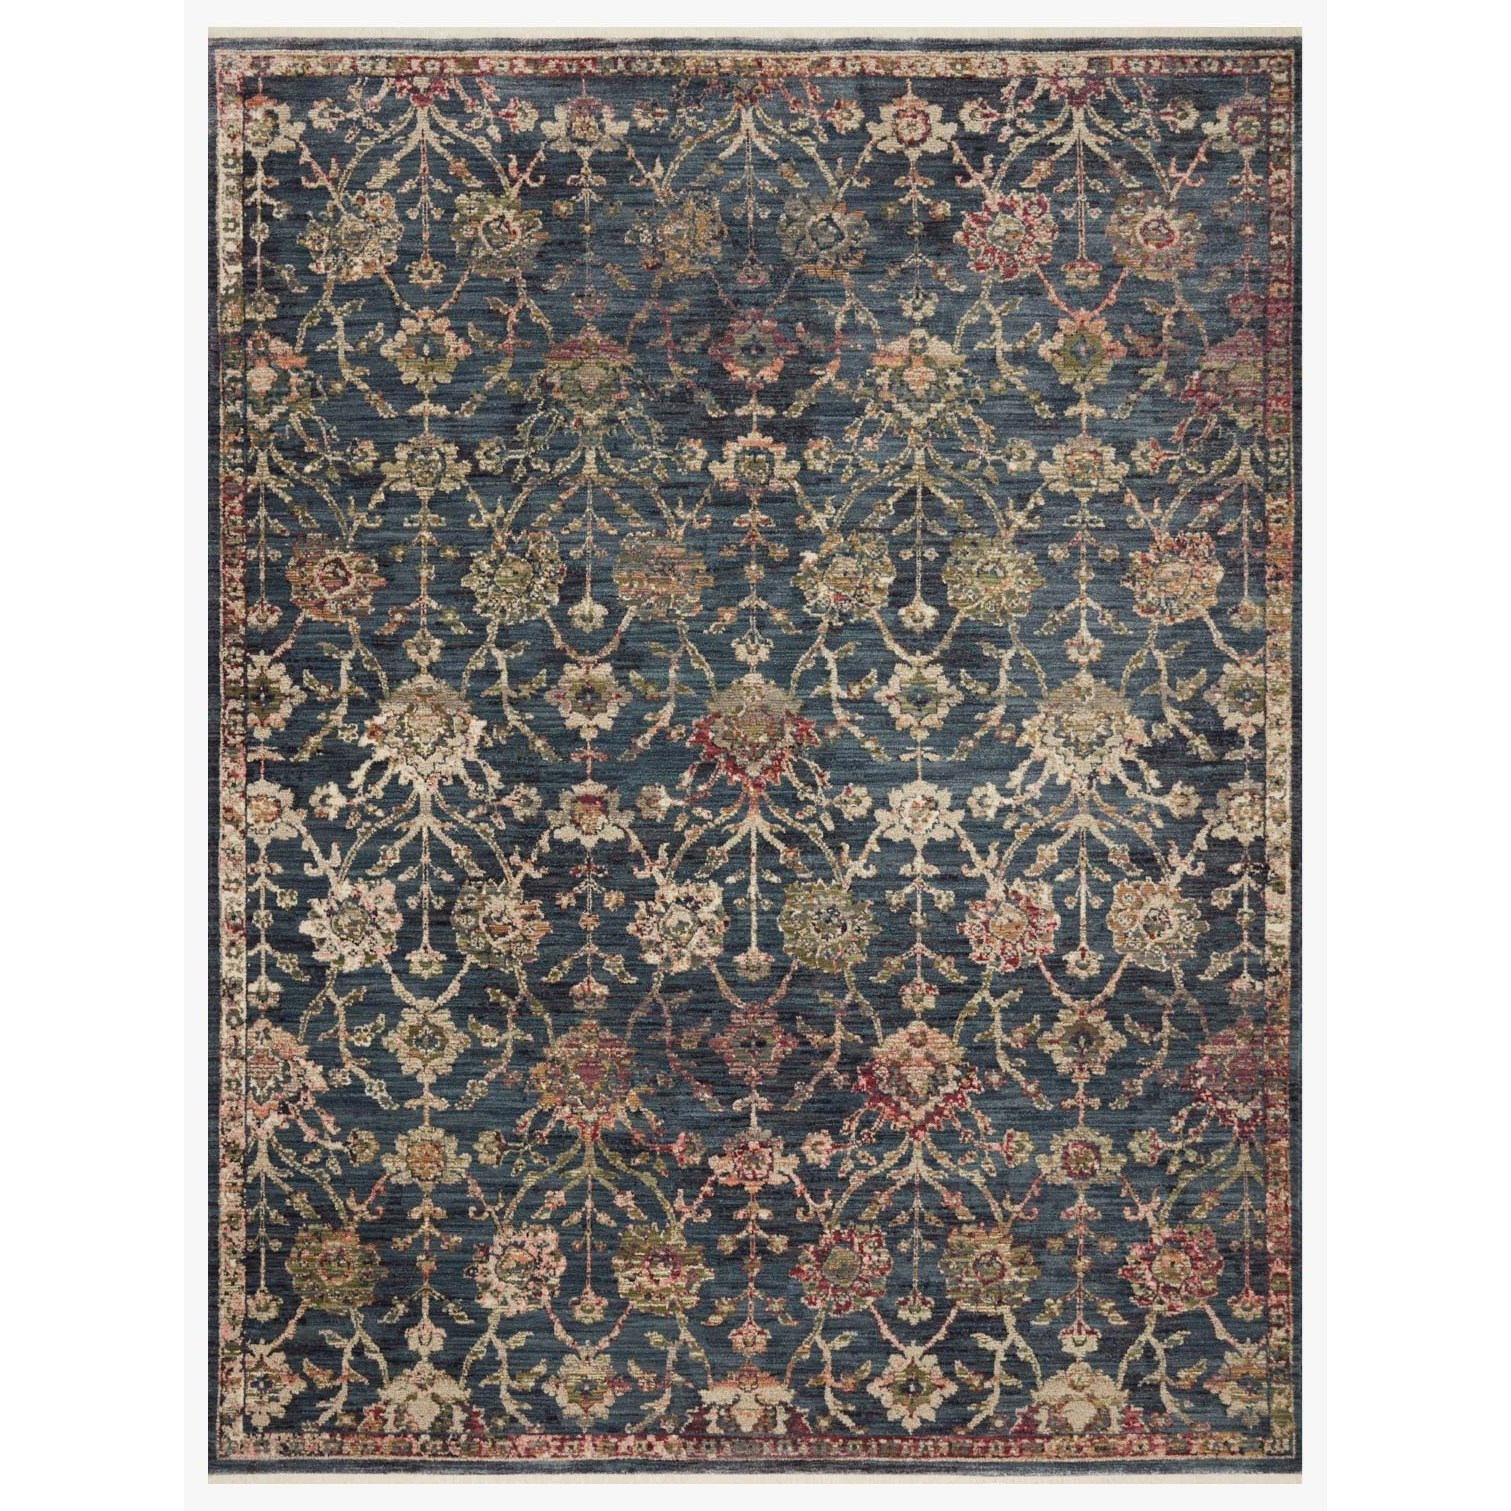 "Giada 7'10"" x 10' Navy / Multi Rug by Loloi Rugs at Virginia Furniture Market"